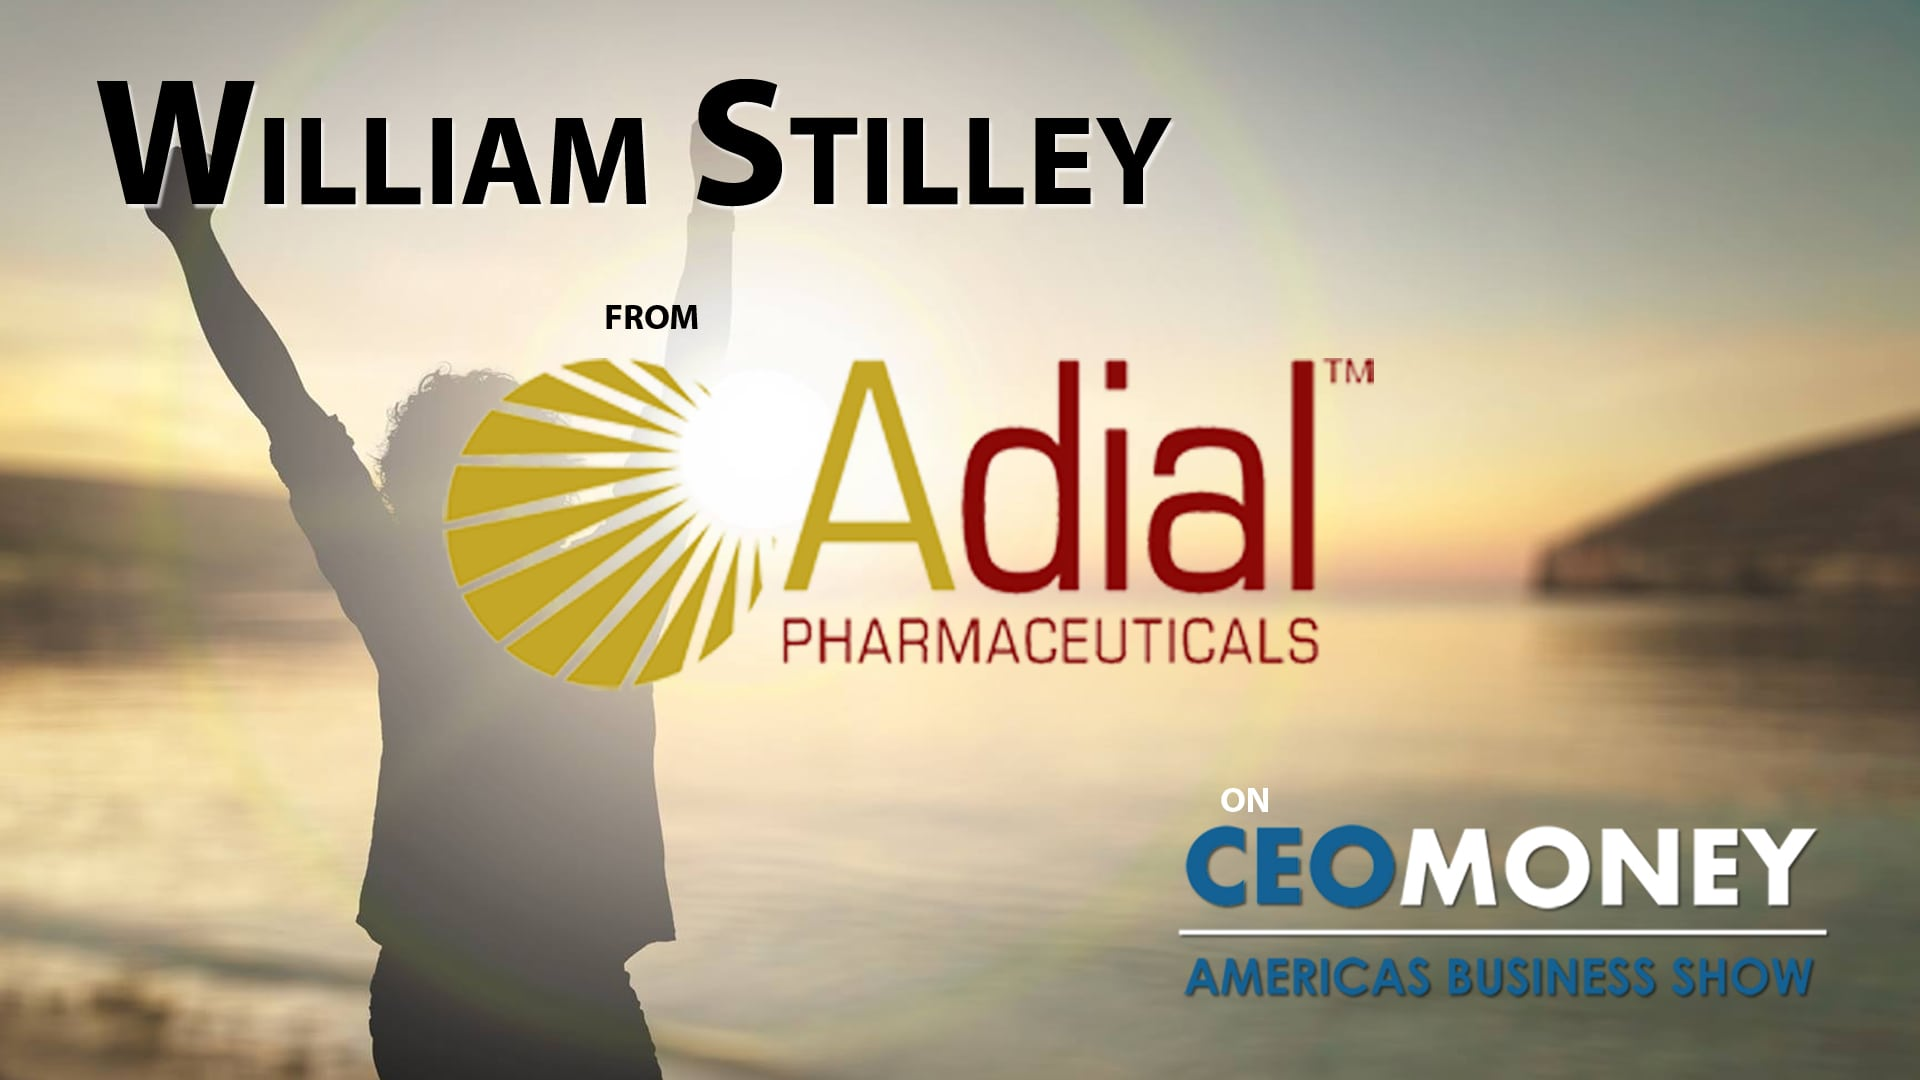 Adial Pharmaceuticals is developing a genetically targeted treatment for alcohol addiction